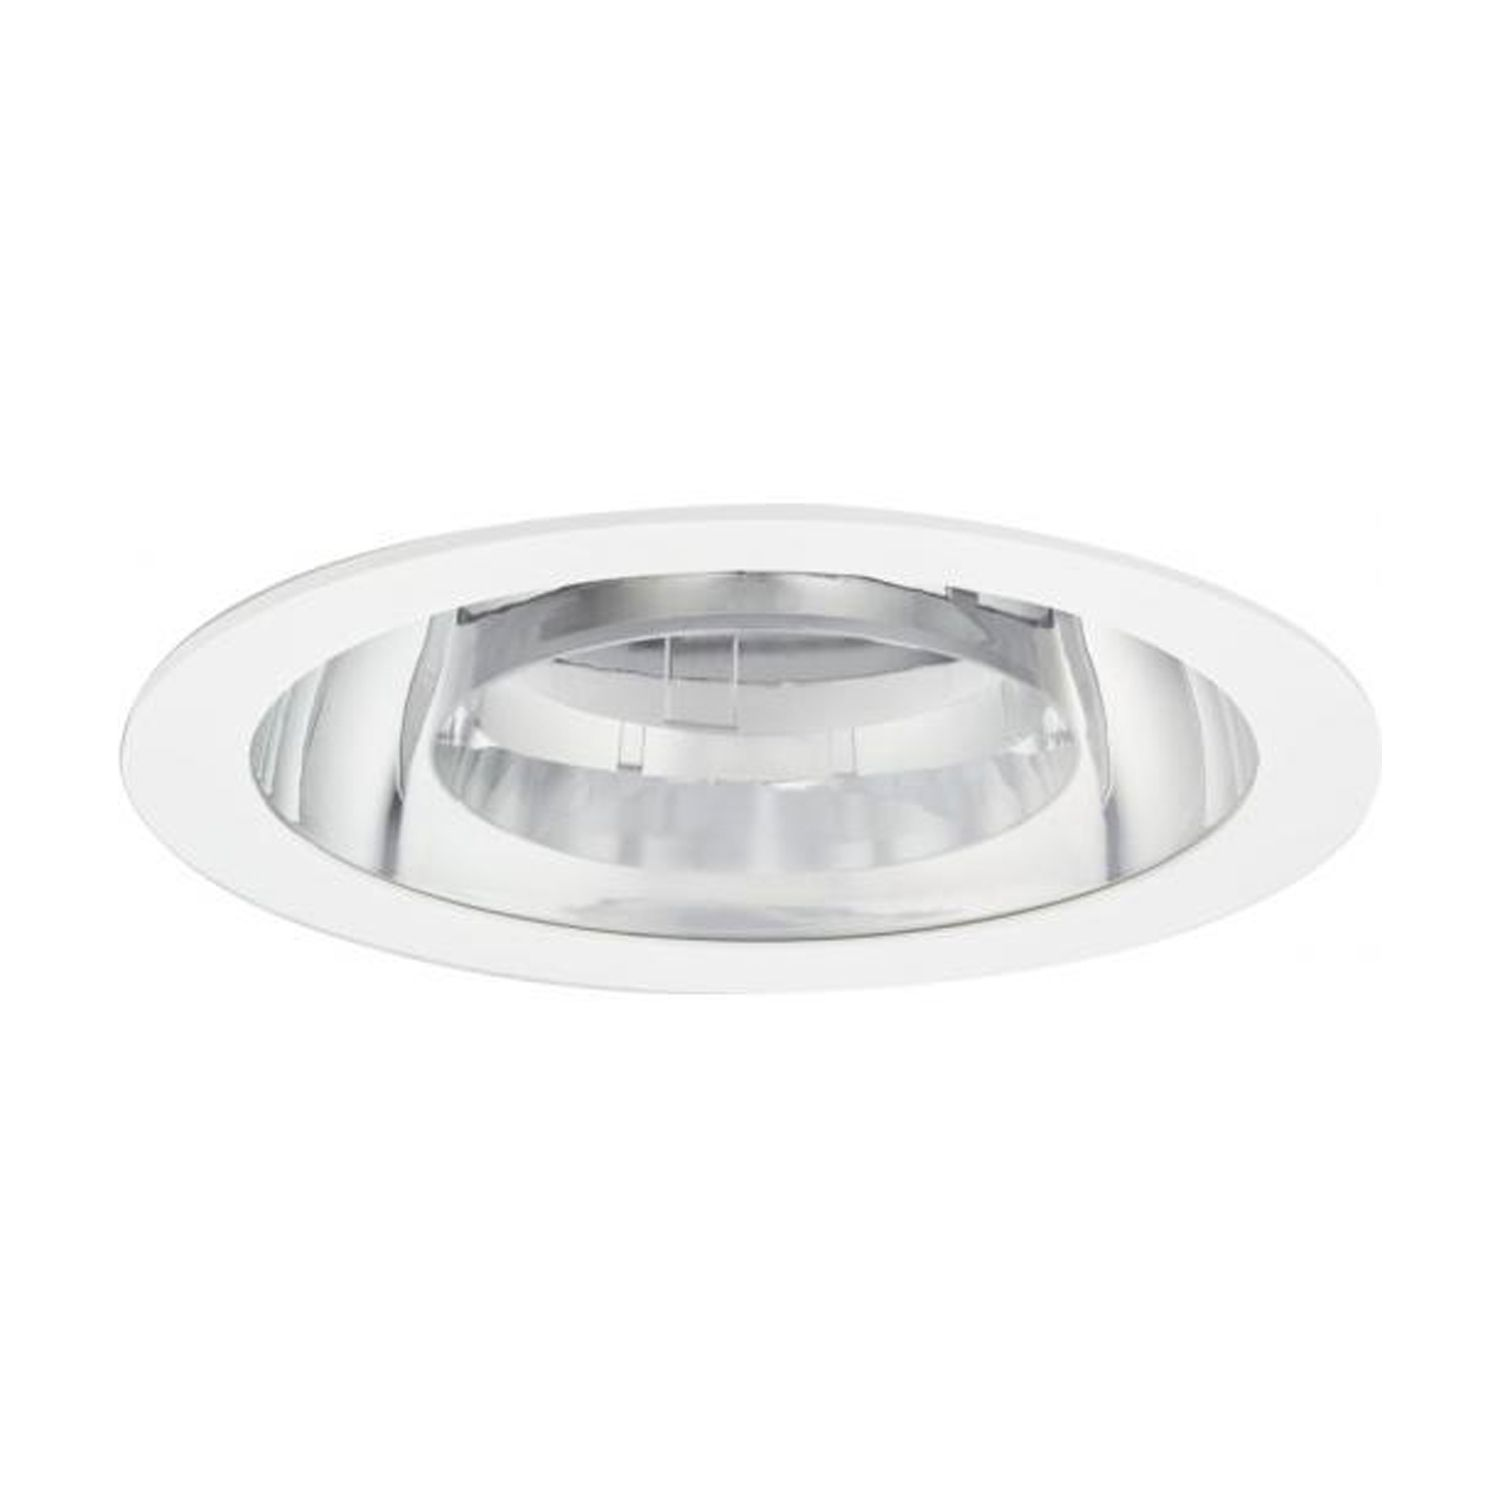 Philips GreenSpace2 DN471B 3000K 2000lm LED20S PSED-VLC-E C ELP3 WH P | Emergency 3H - Dali Dimmable